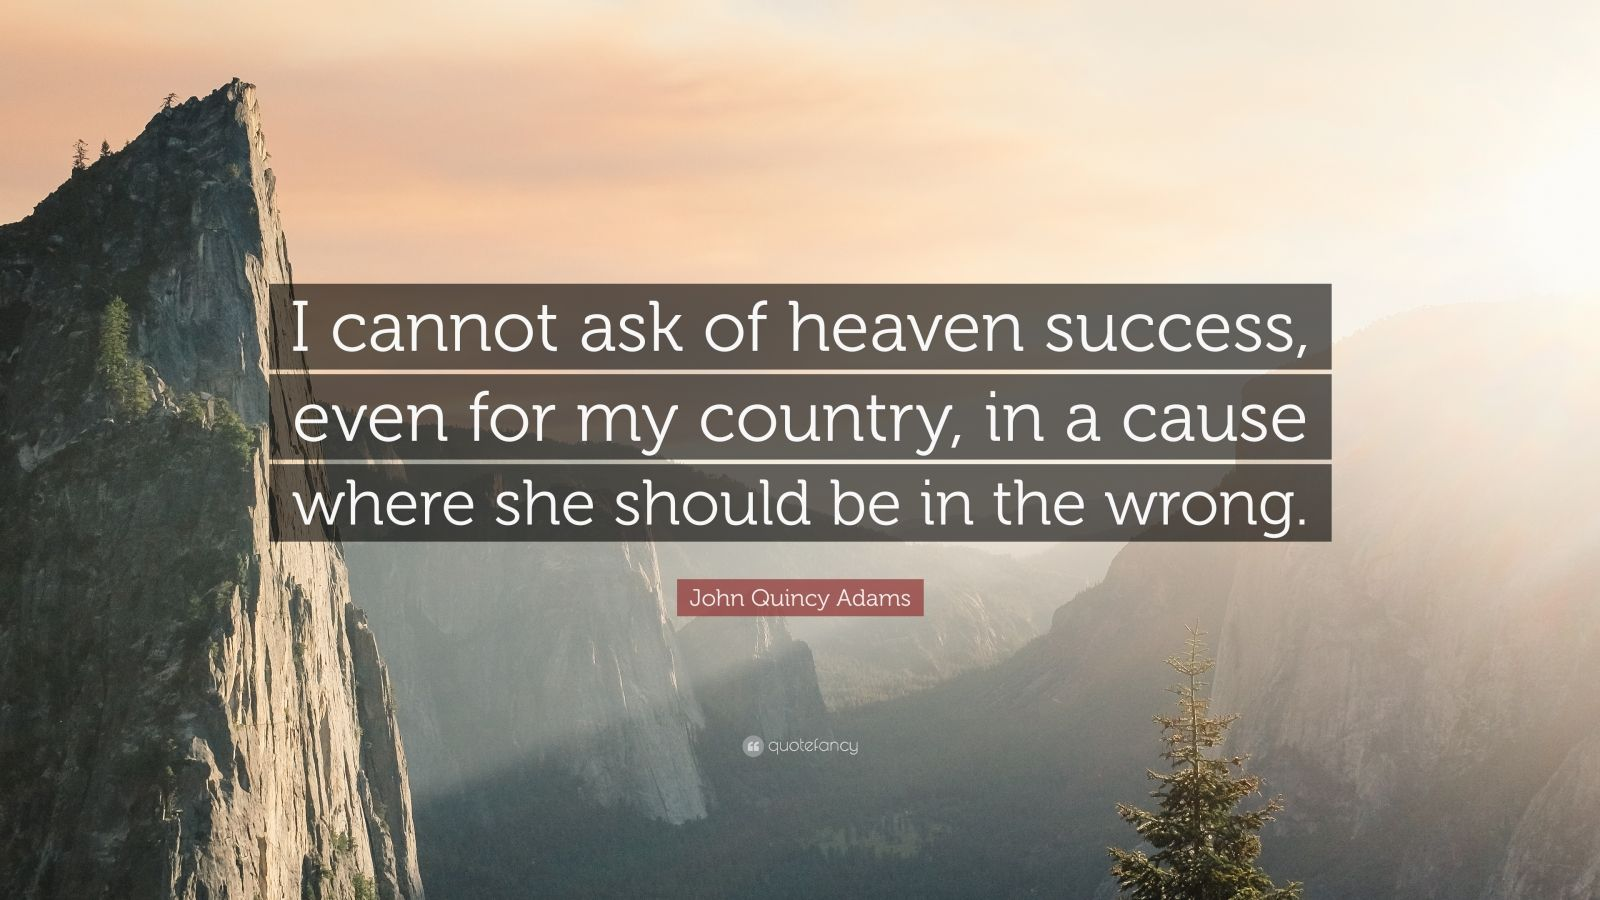 """John Quincy Adams Quote: """"I cannot ask of heaven success, even for my country, in a cause where she should be in the wrong."""""""